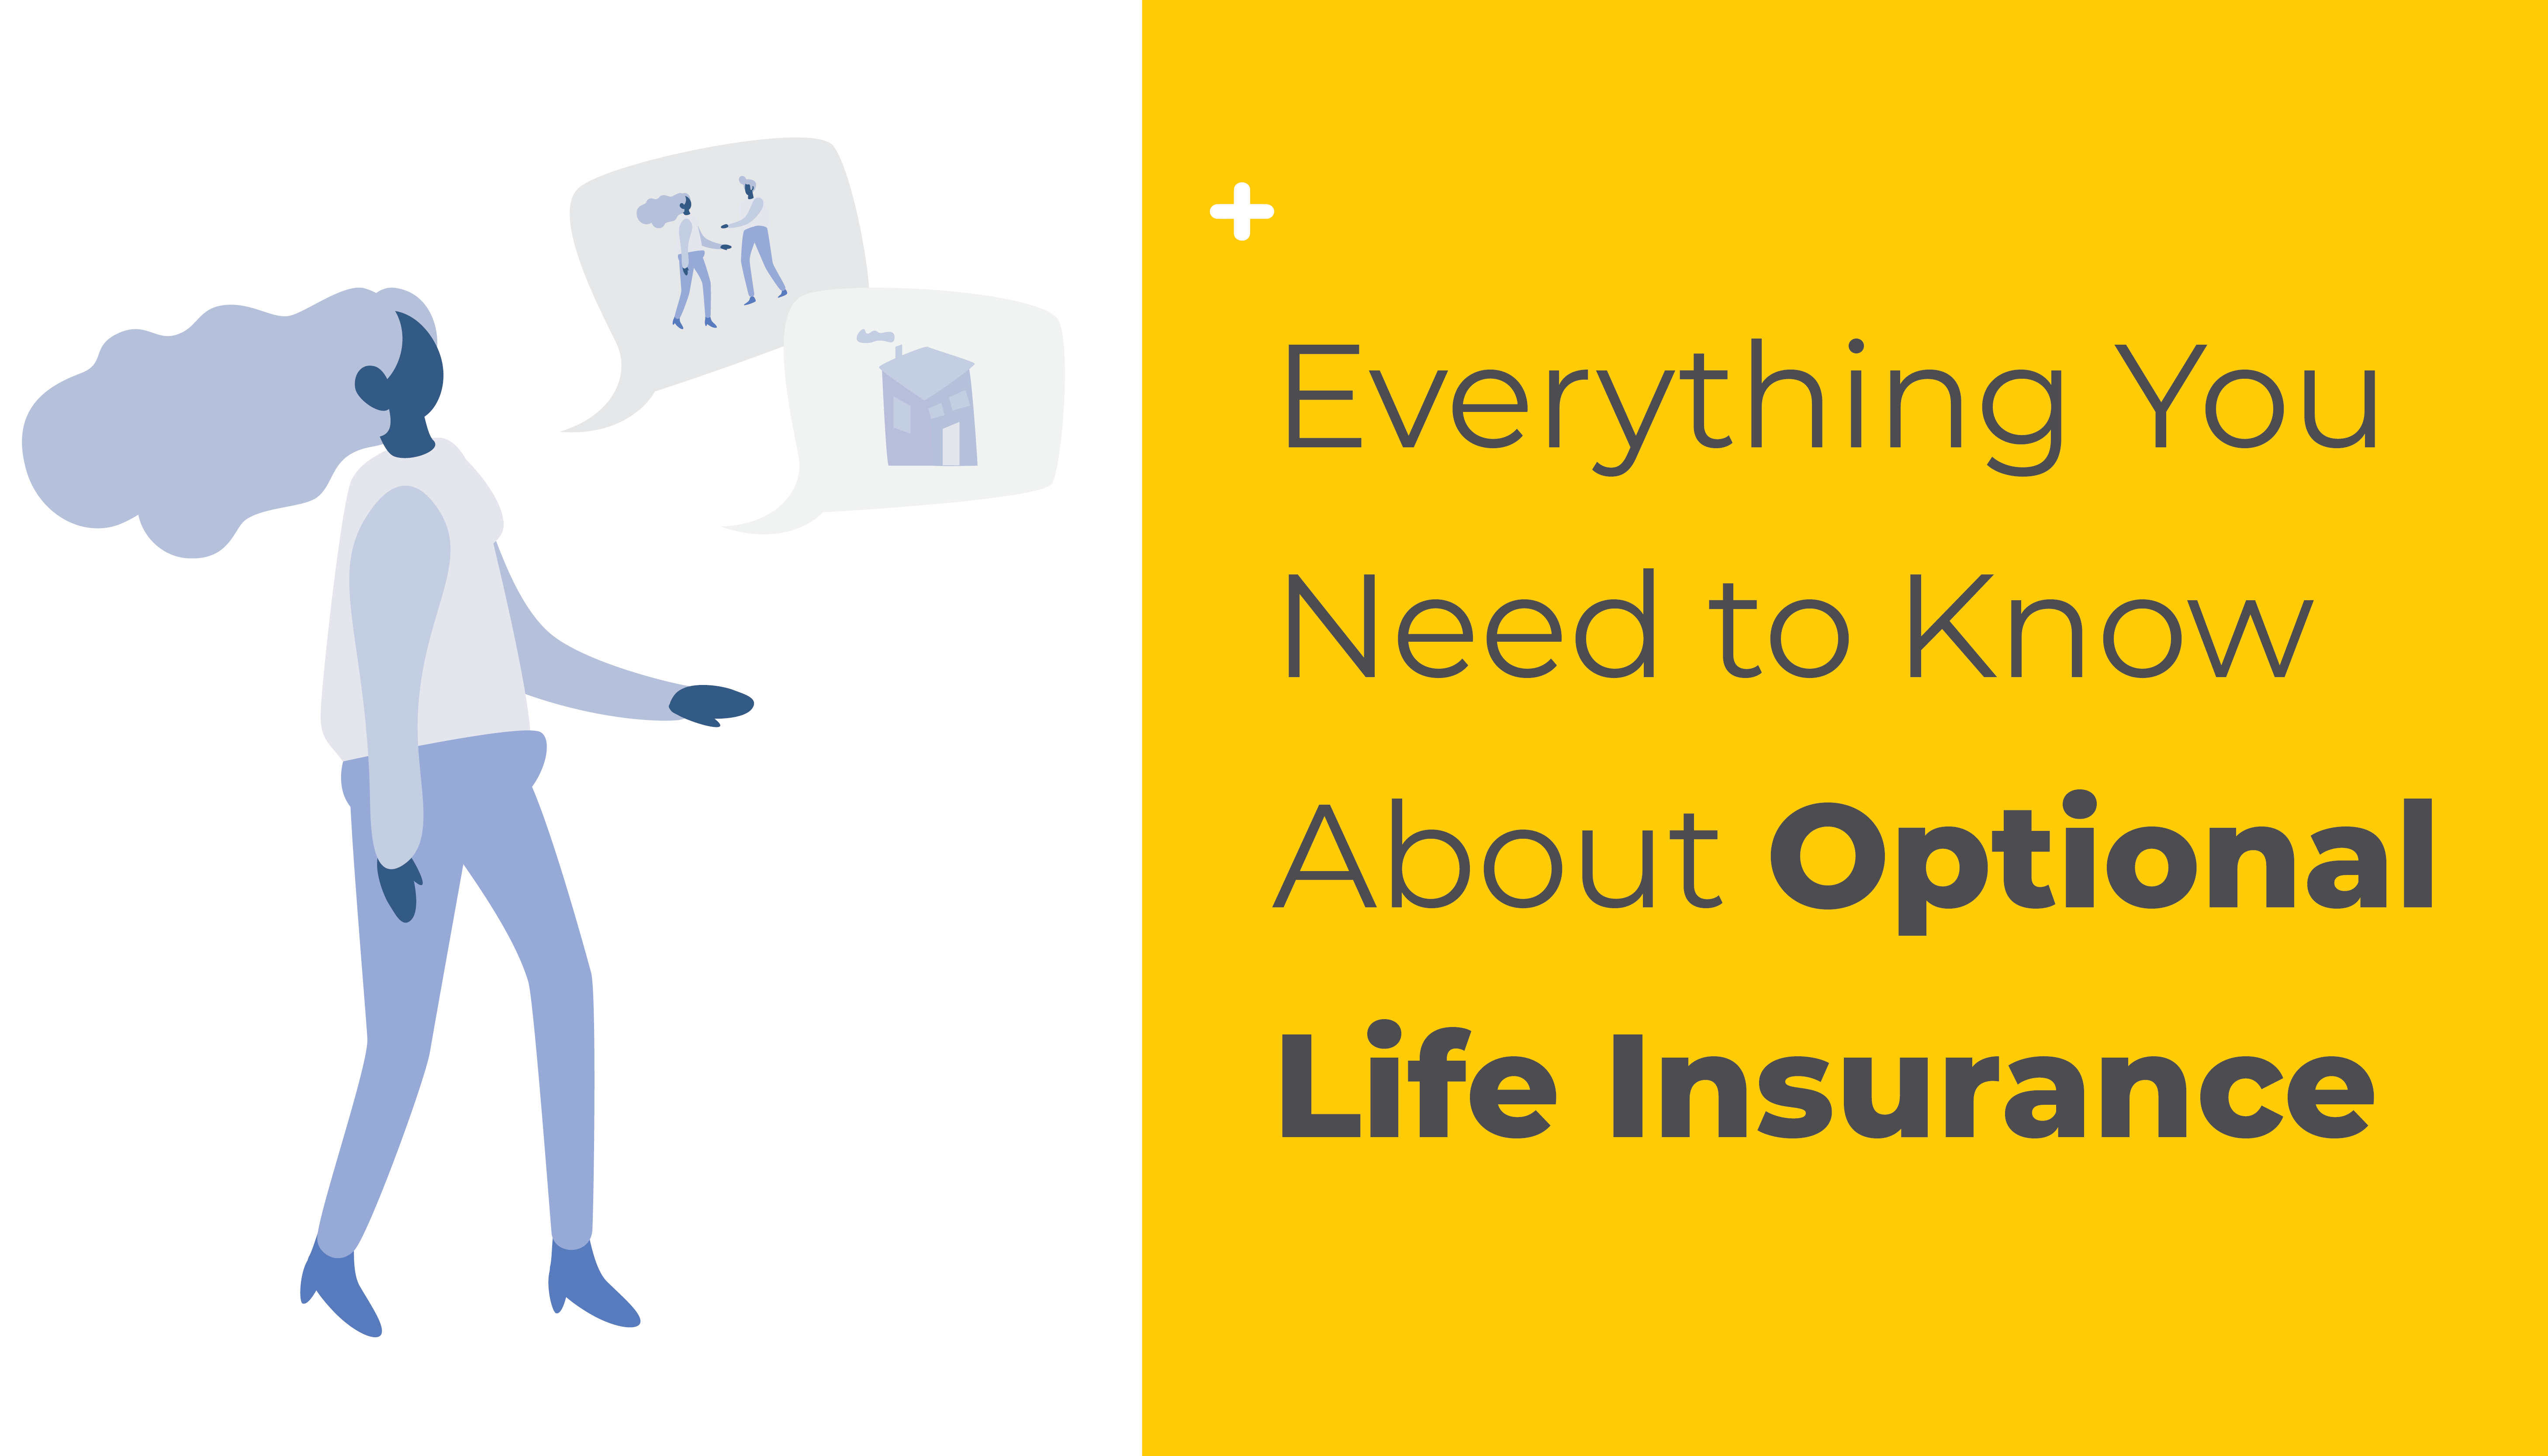 Everything You Need to Know About Optional Life Insurance | Benefits by Design